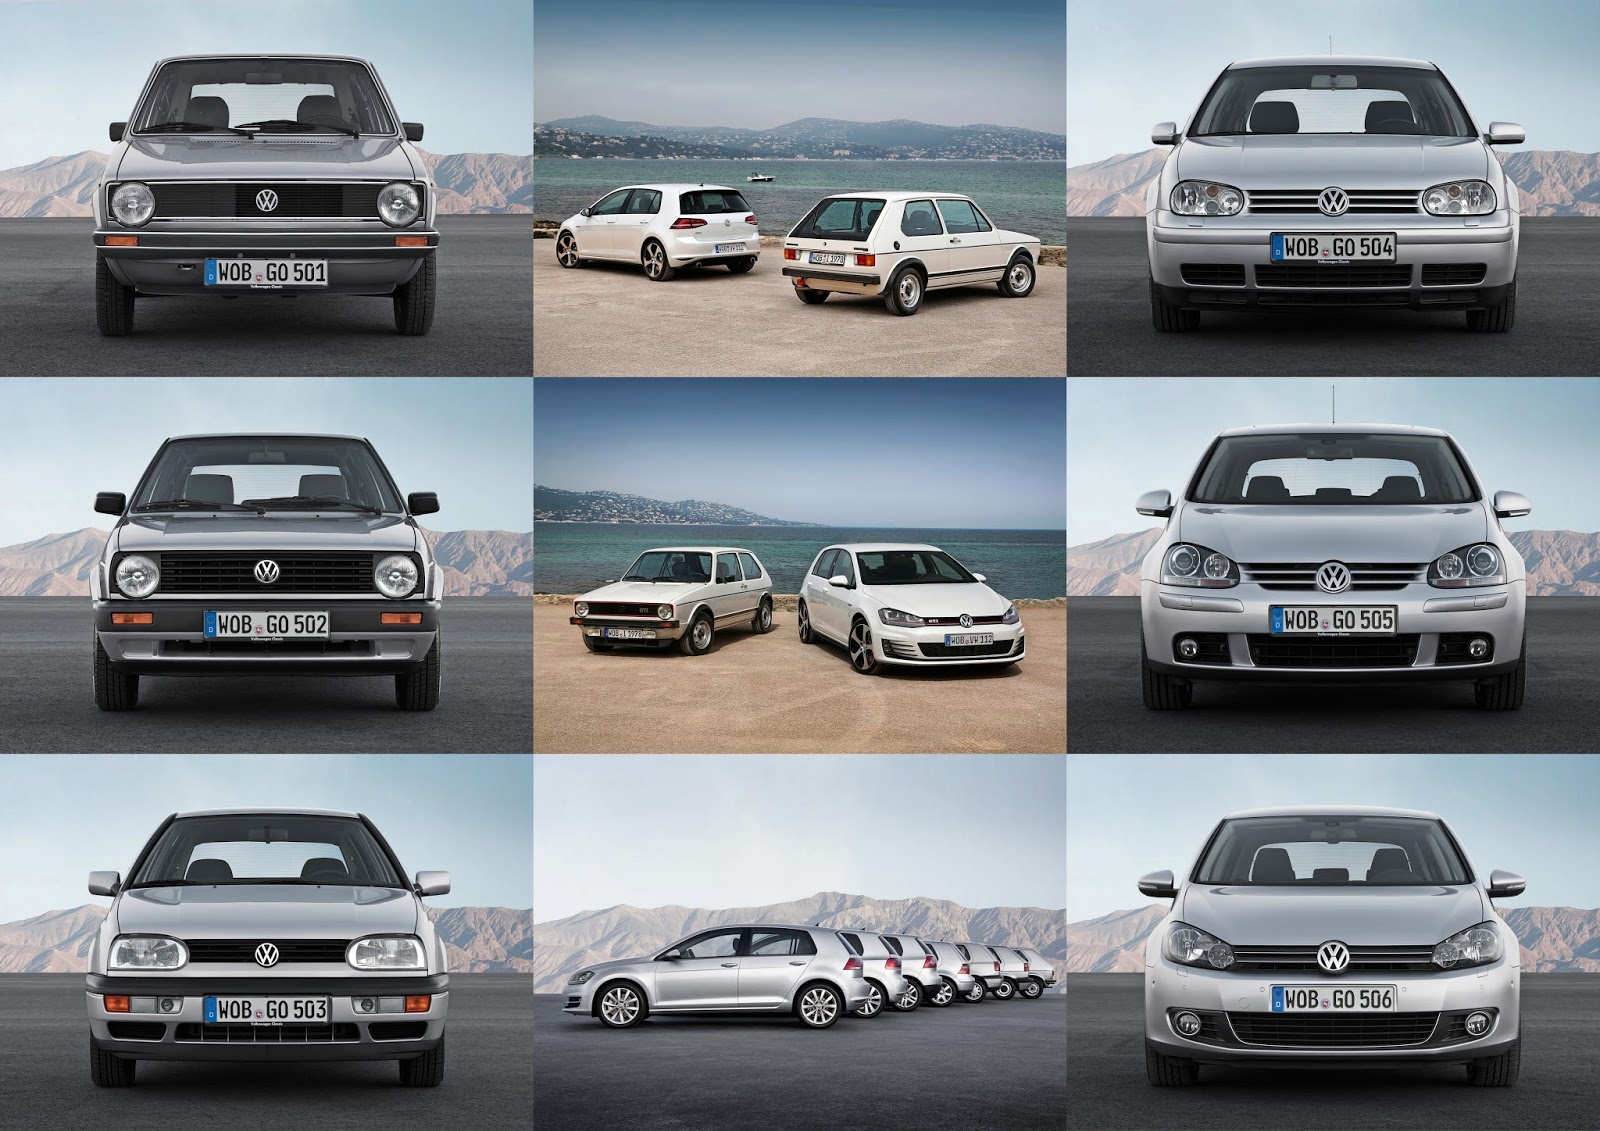 Speedmonkey: Happy 40th Birthday VW Golf - Here's a Detailed History Through All Generations